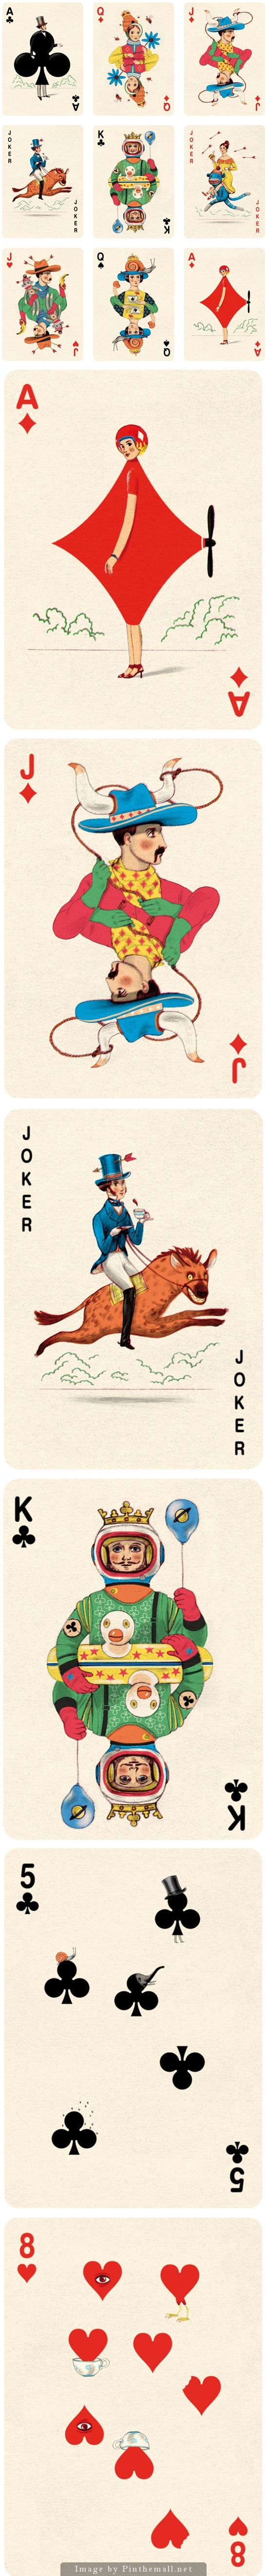 Playing Cards Illustrations by Jonathan Burton